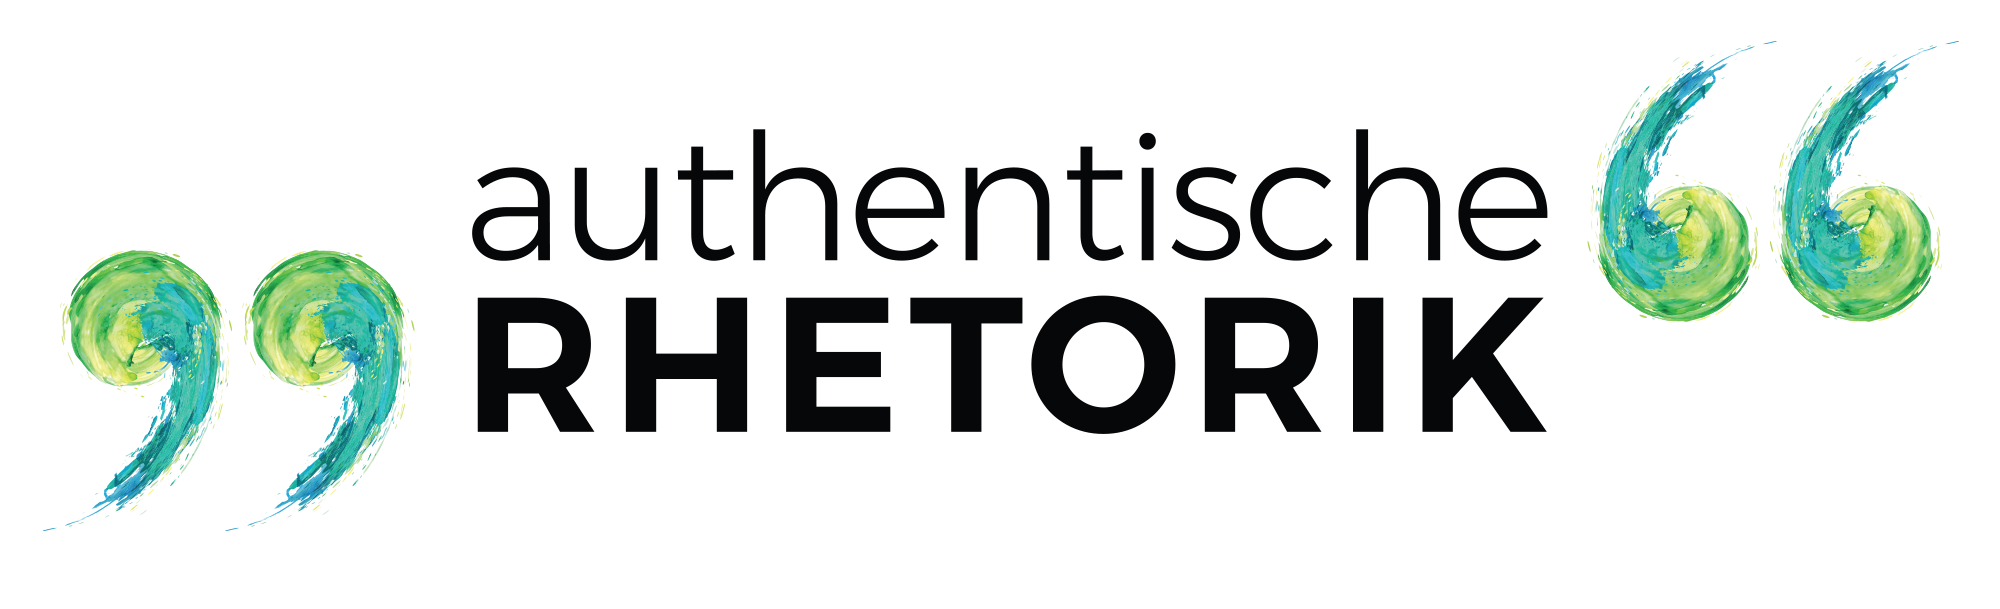 Rhetorik logo